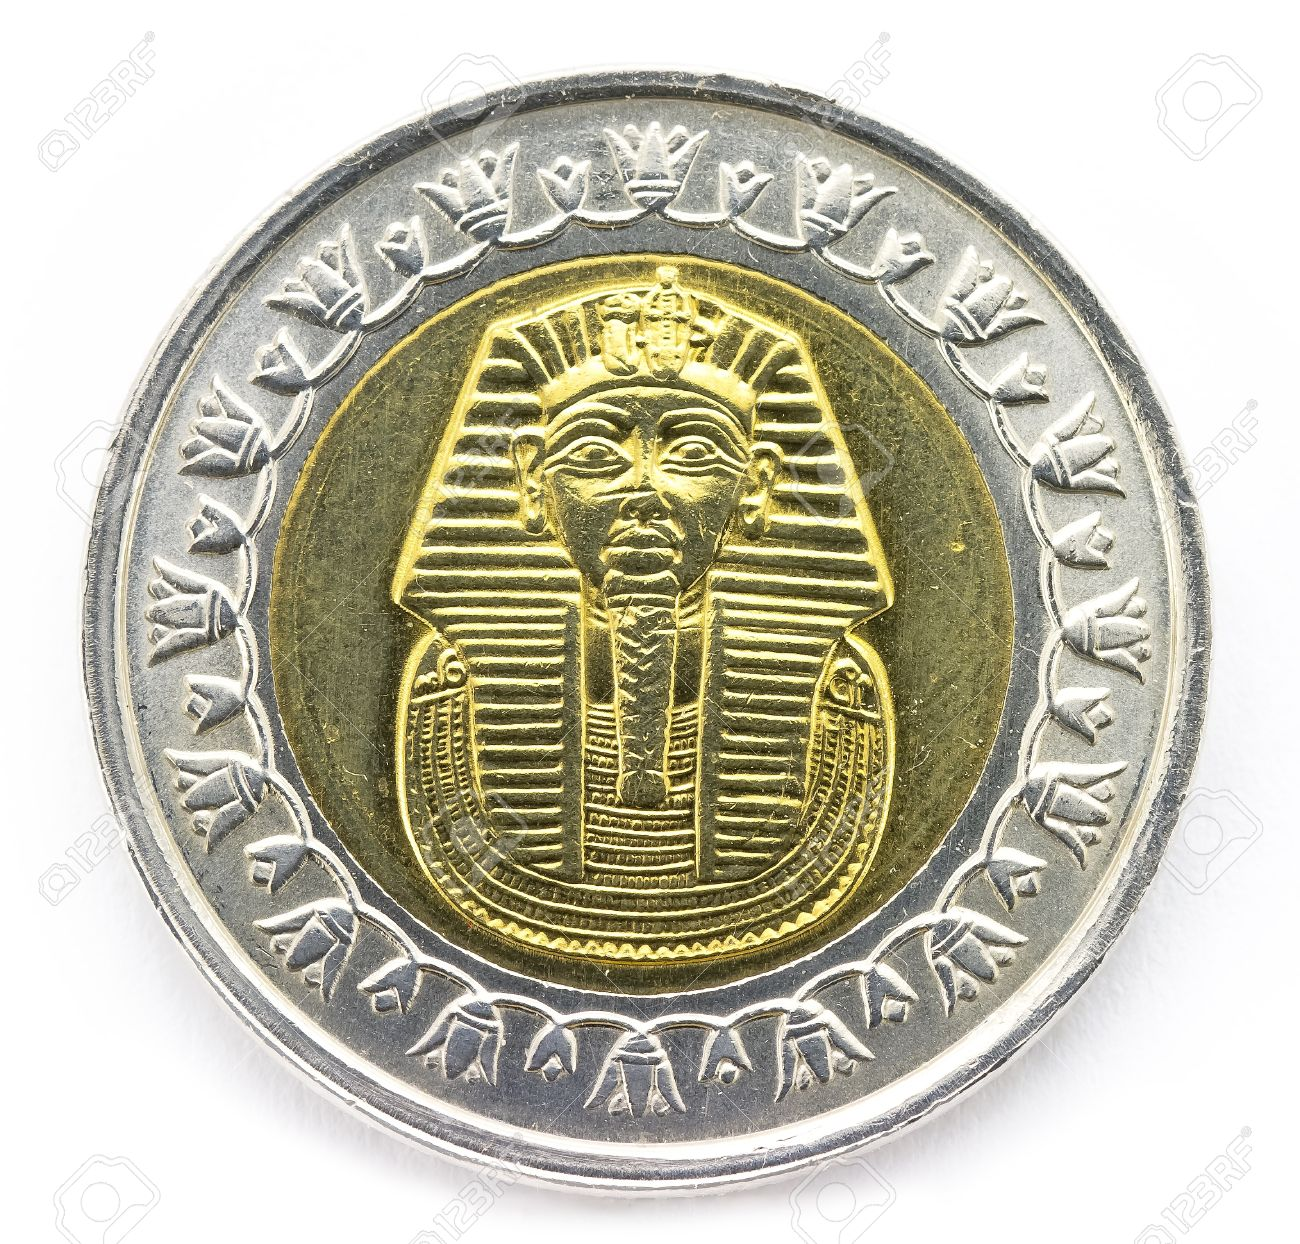 Arab Republic Of Egypt The Coin Of 1 Pound Shows The Pharaoh